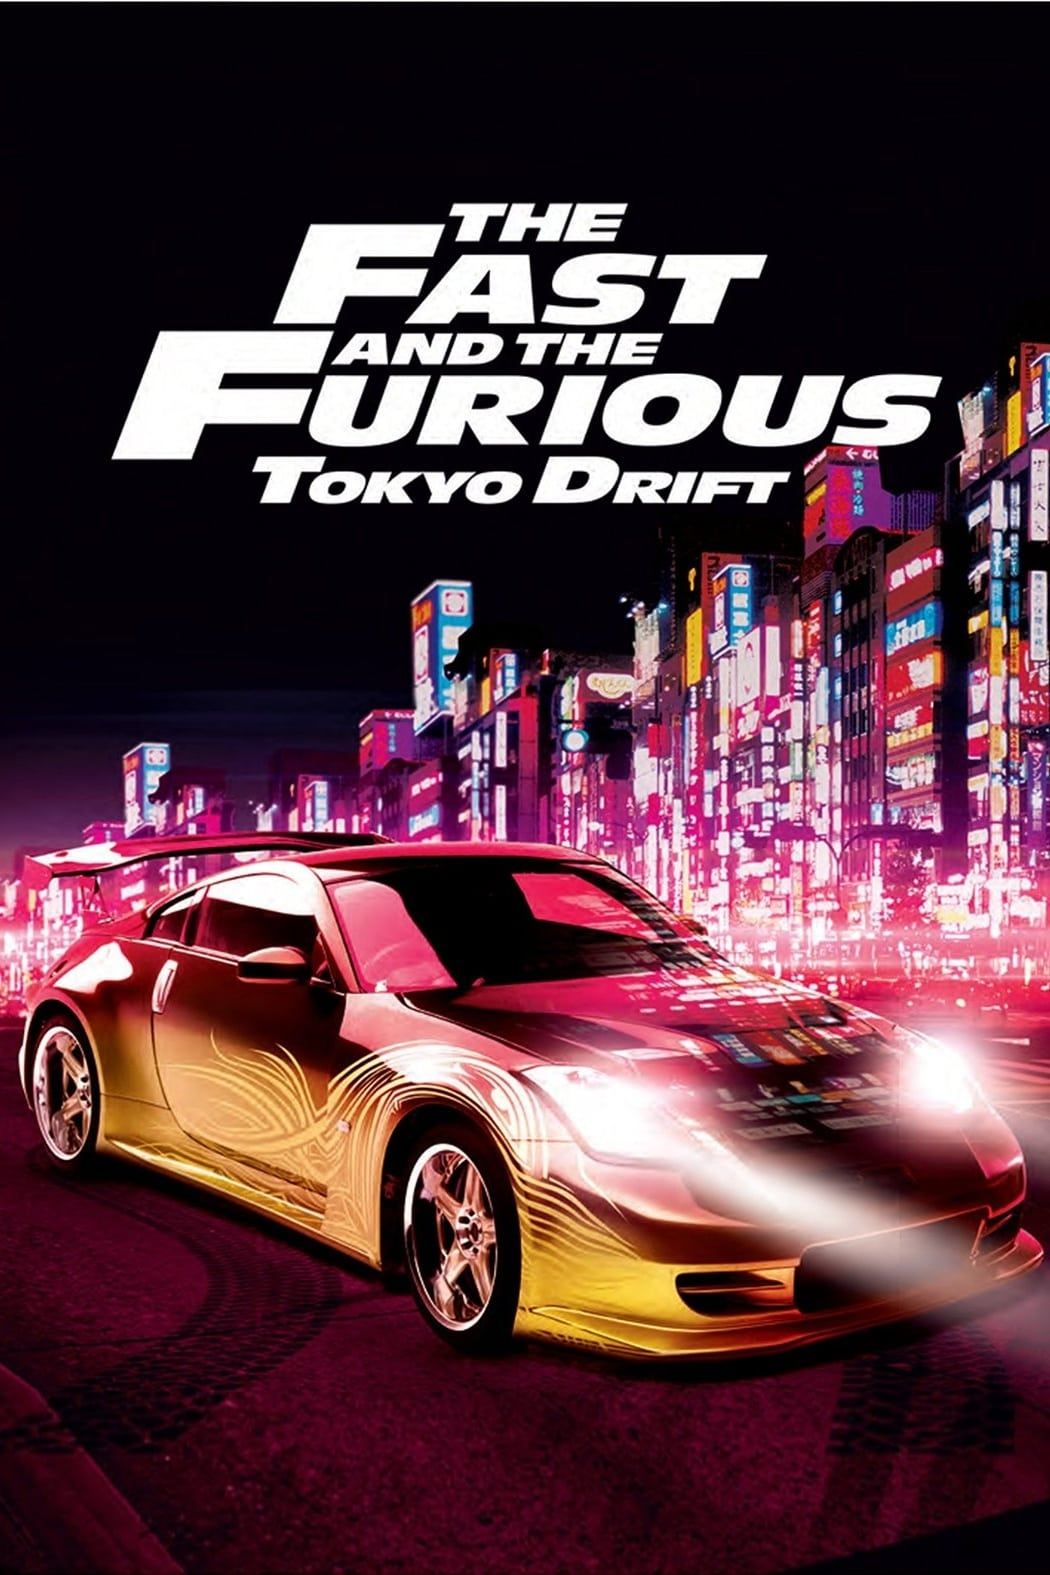 fast and furious poster high quality HD printable wallpapers tokyo drift 2006 porsche 911